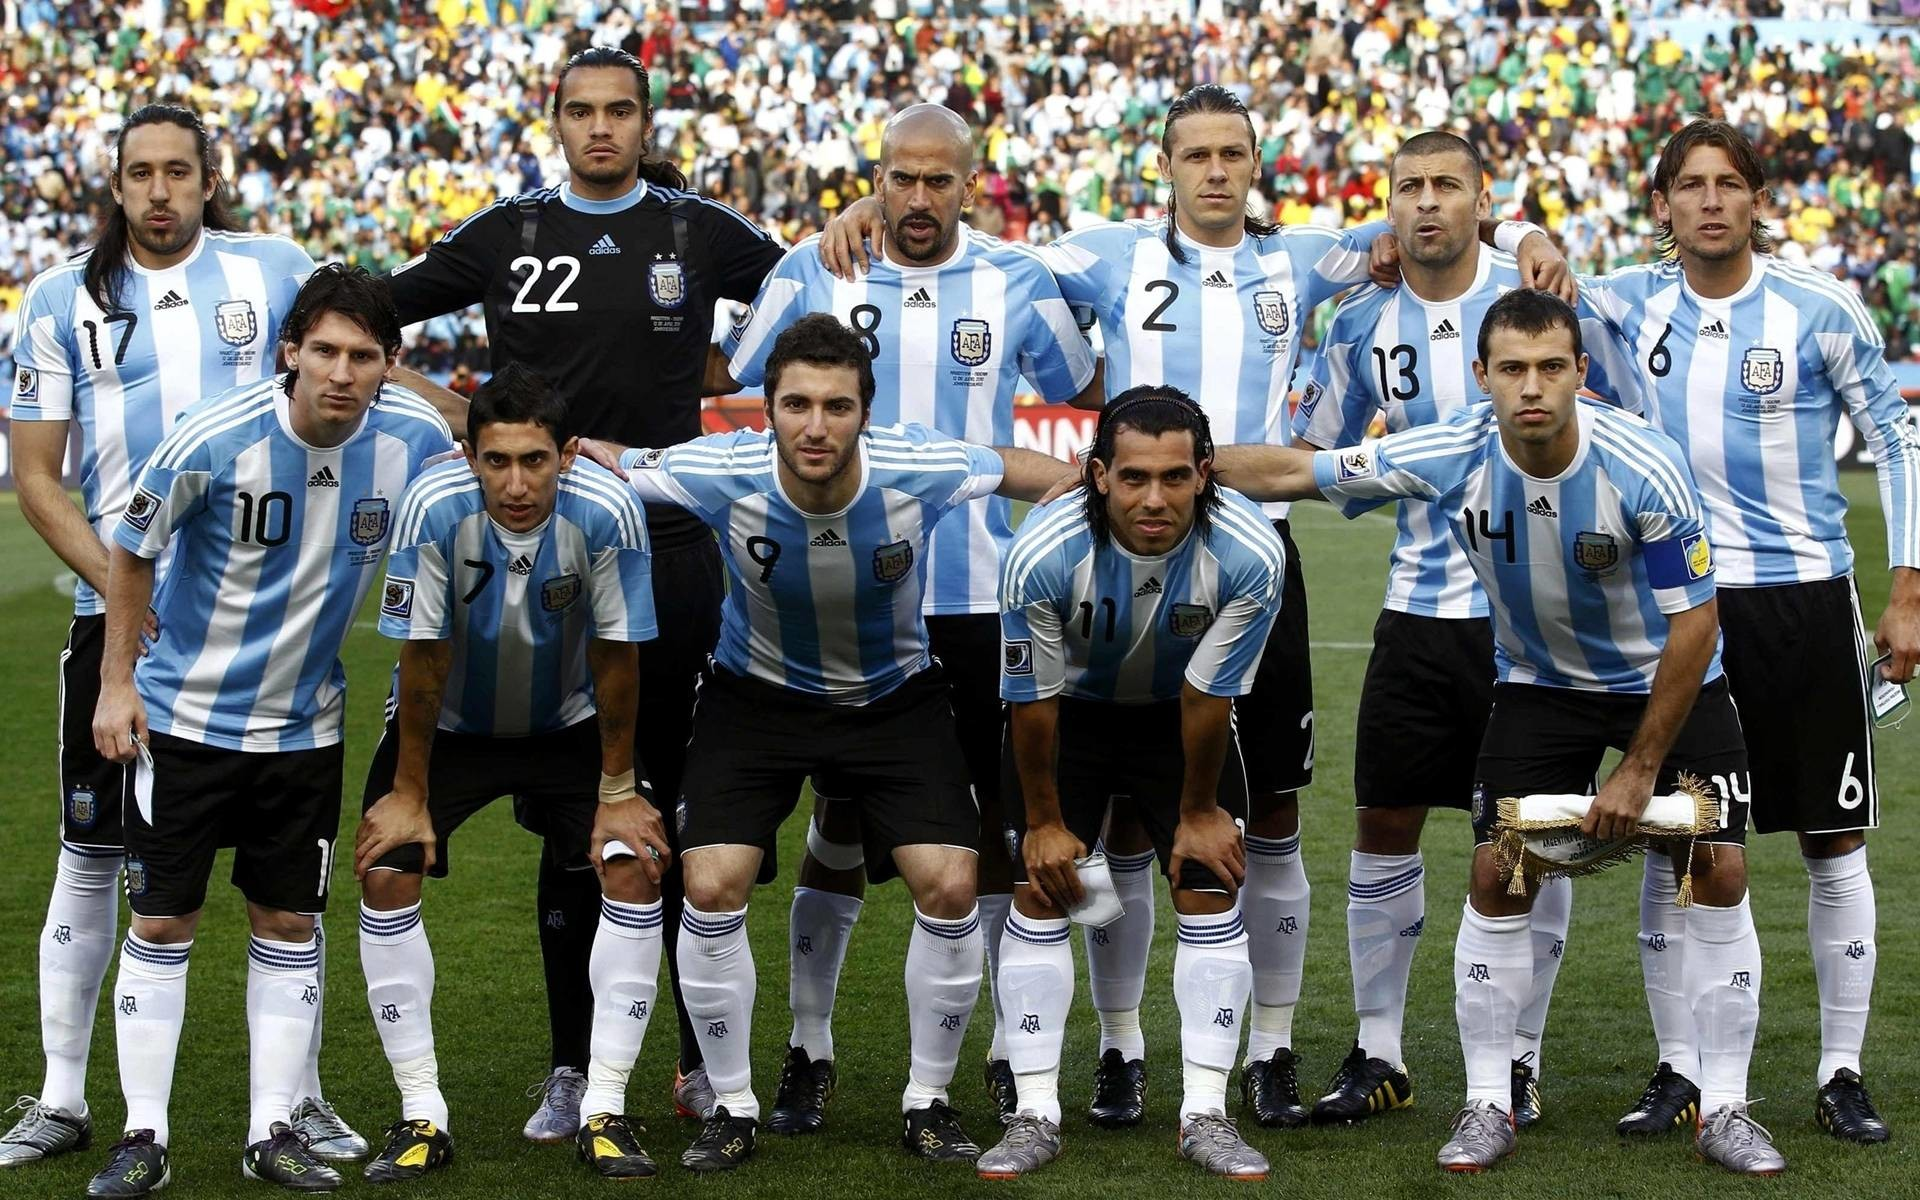 a7c1d35bfb9 ... PC desktop background · Download · 1920x1200 Argentina National  Football Team HD Wallpapers 2015 - Wallpapers Mela